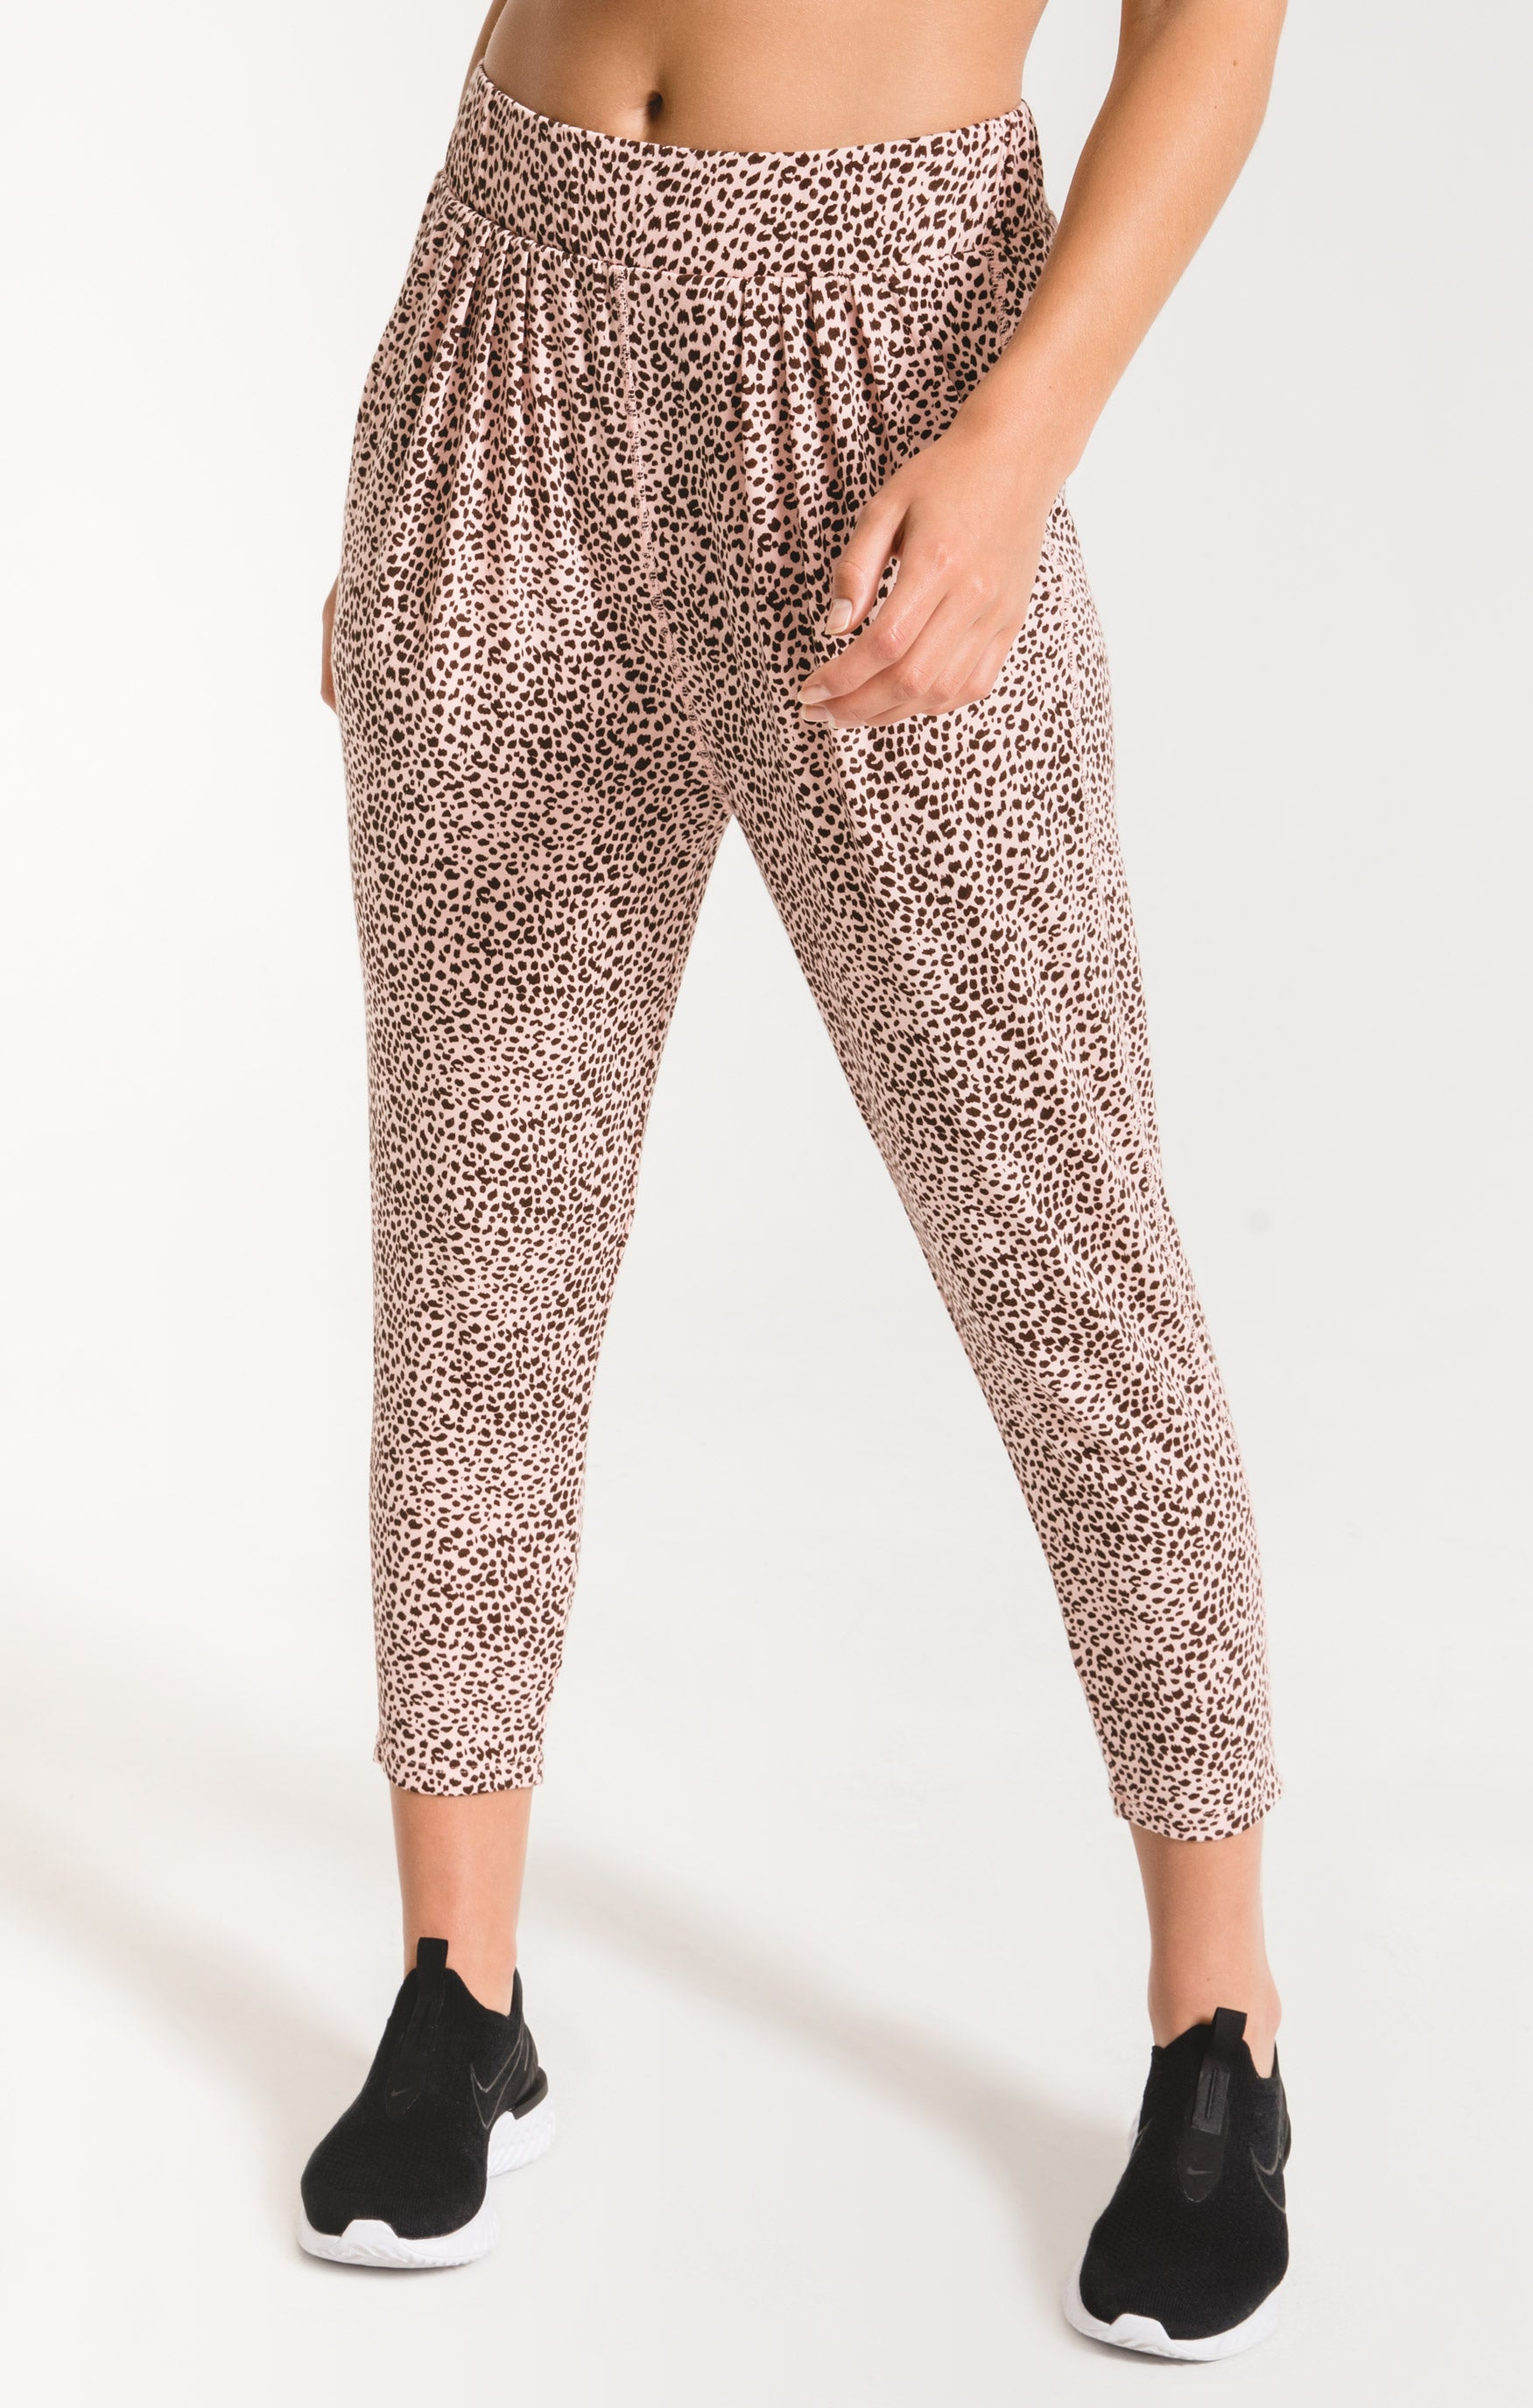 Pants Mini Leopard Pant Pale Blush